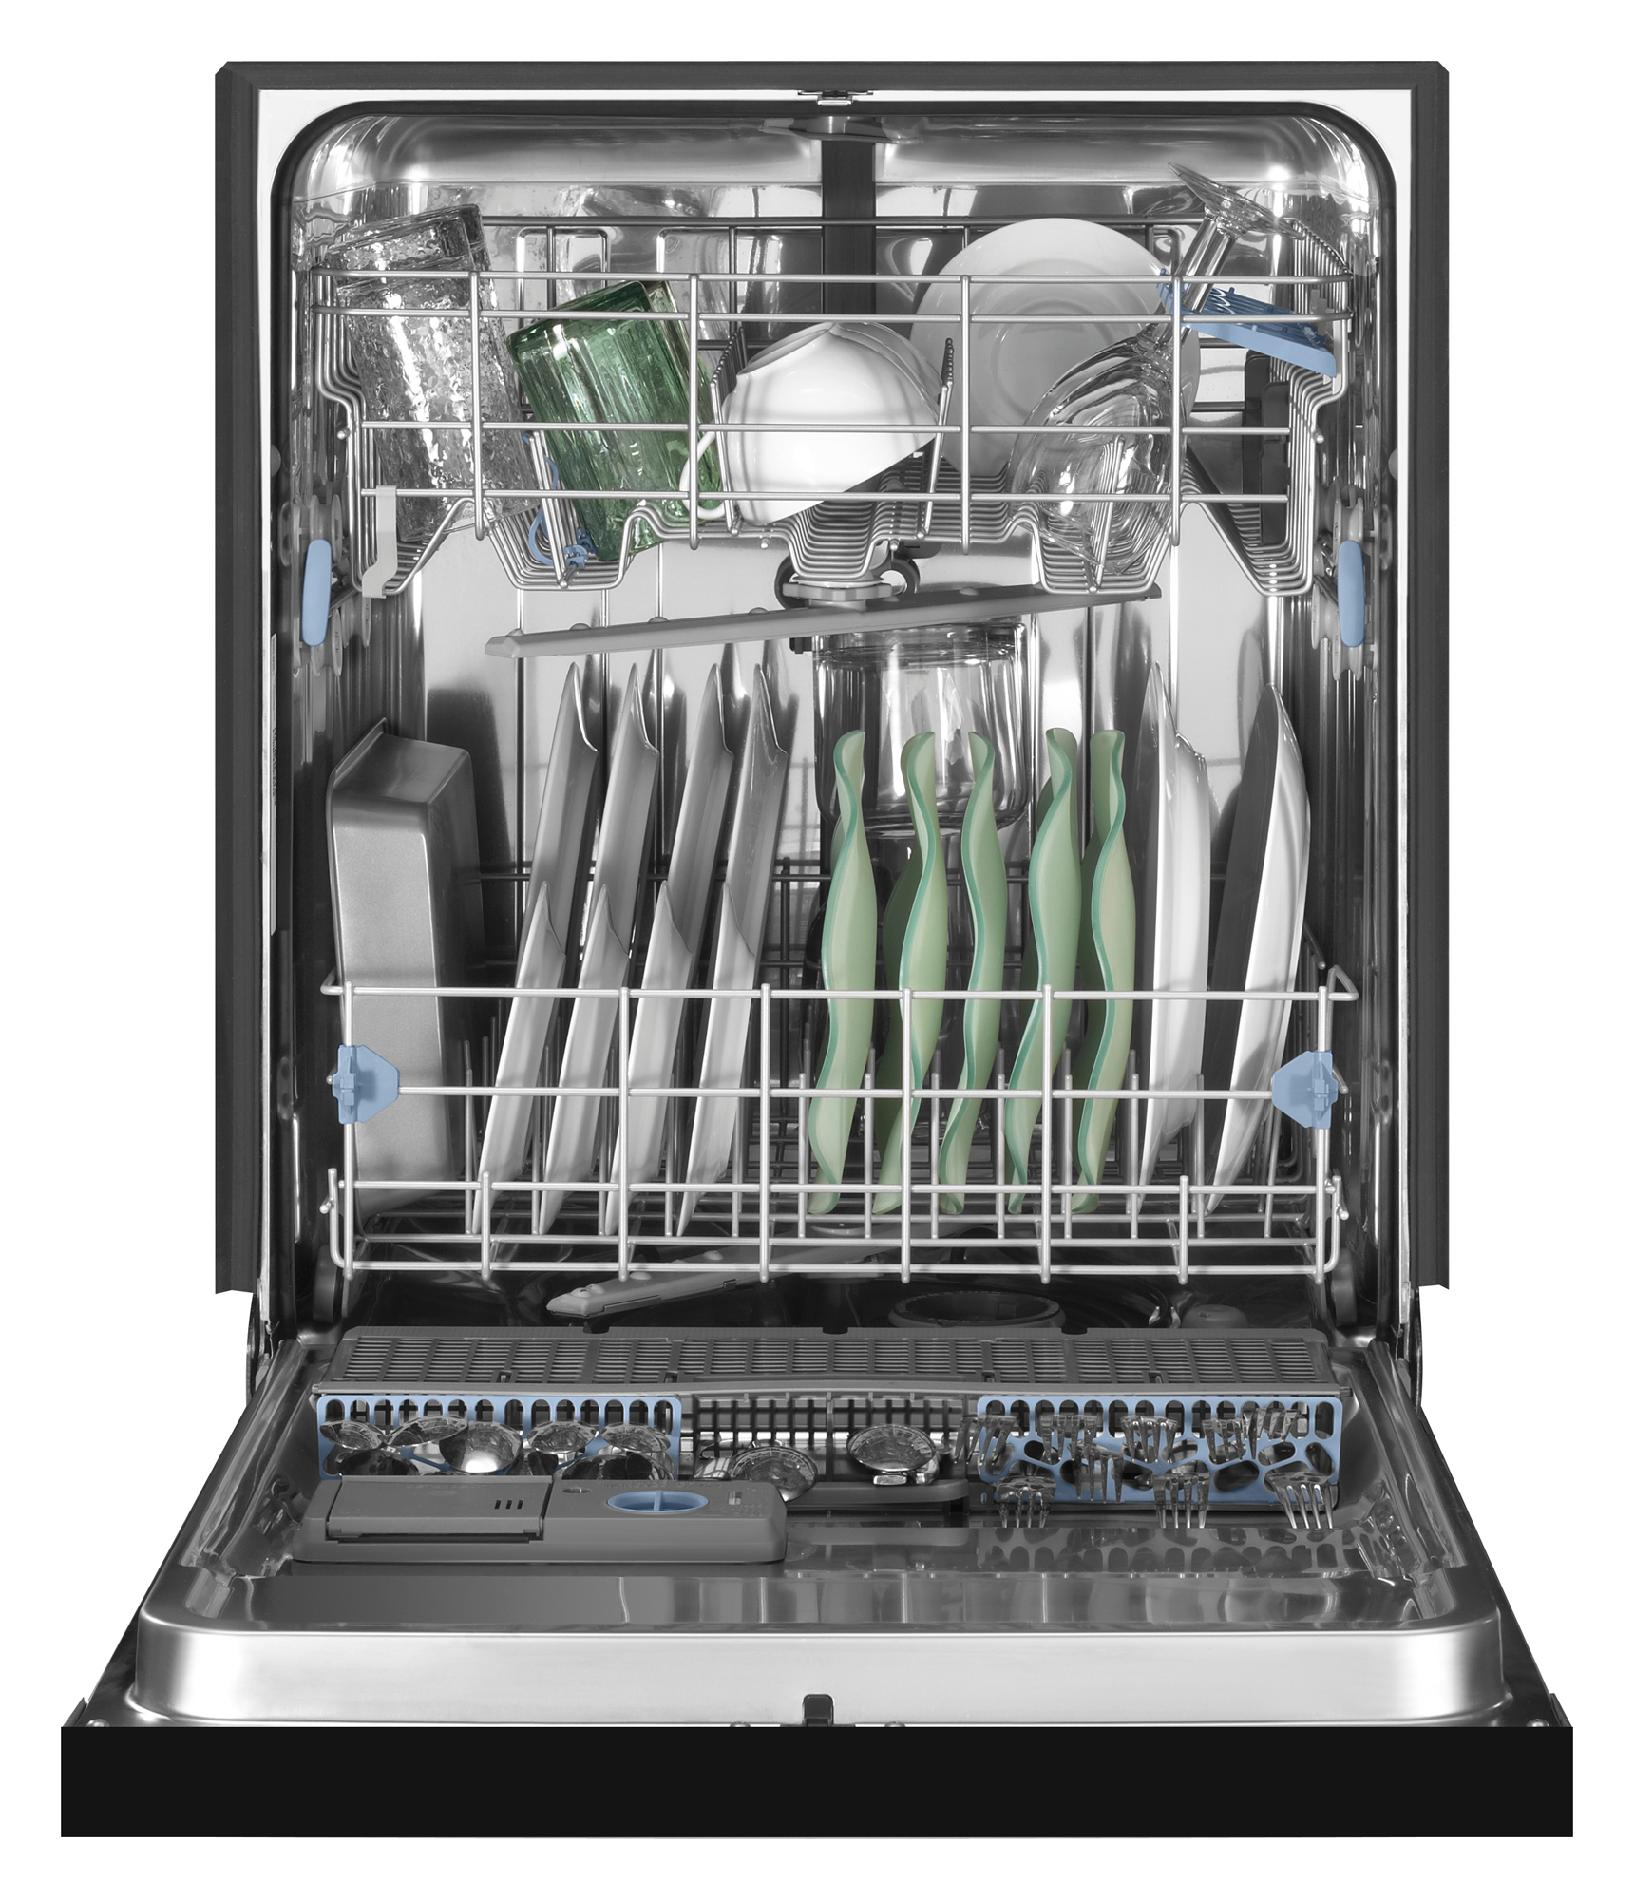 """Whirlpool 24"""" Built-In Dishwasher w/ Stainless-Steel Tub - Black"""